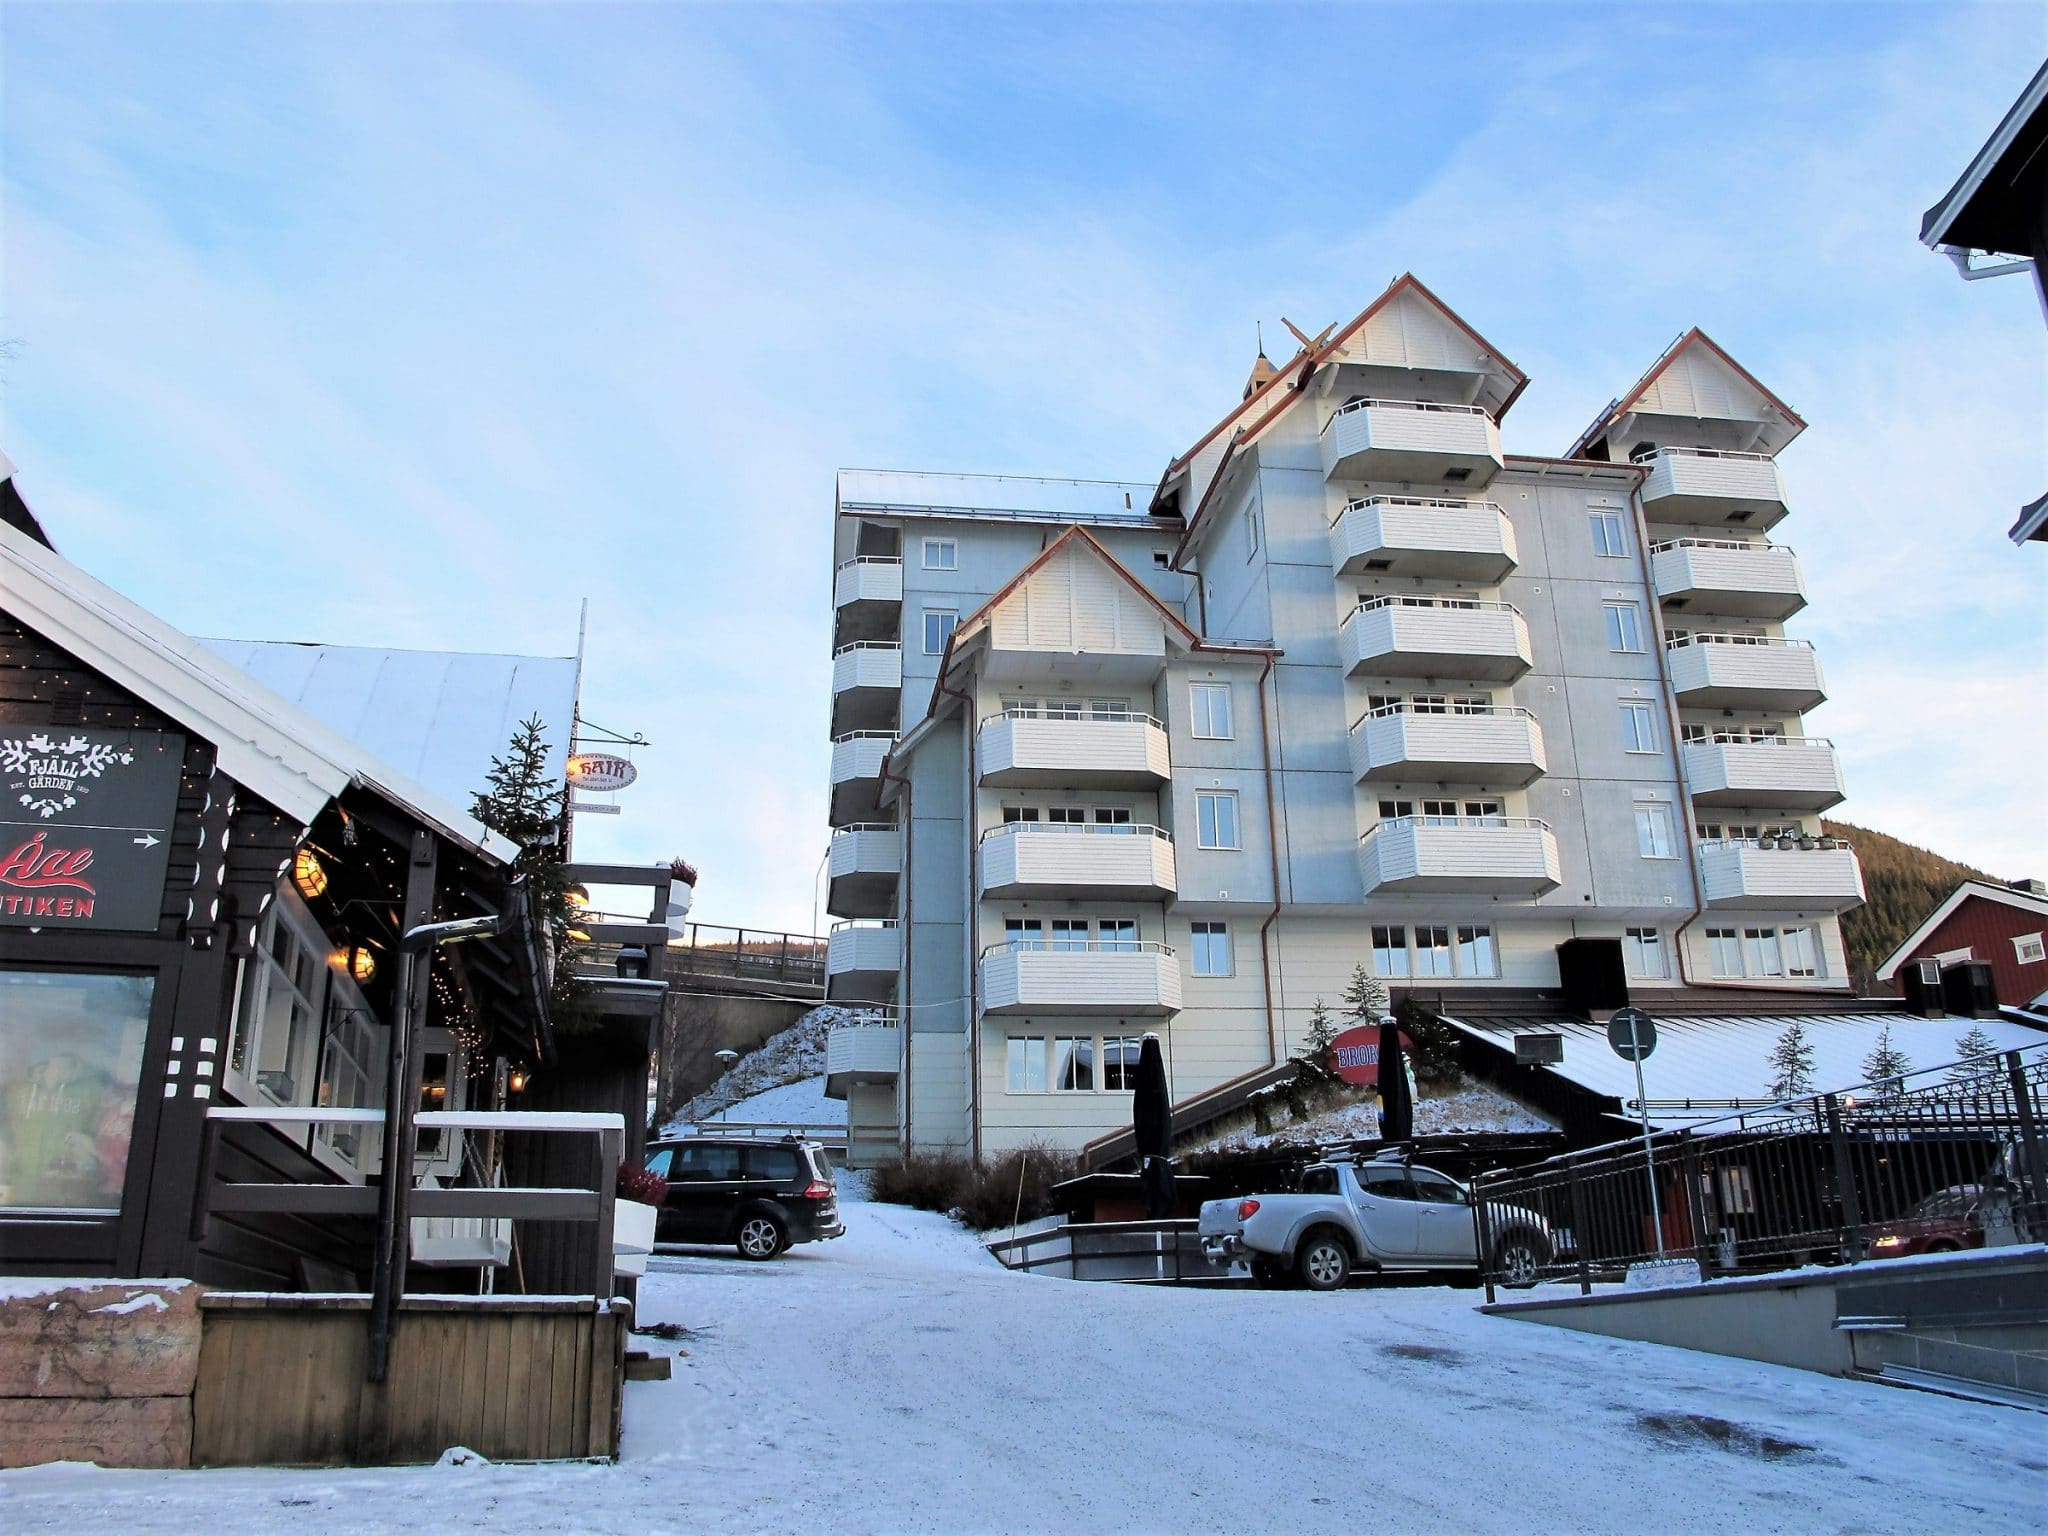 The freestyle house at Åre Torg